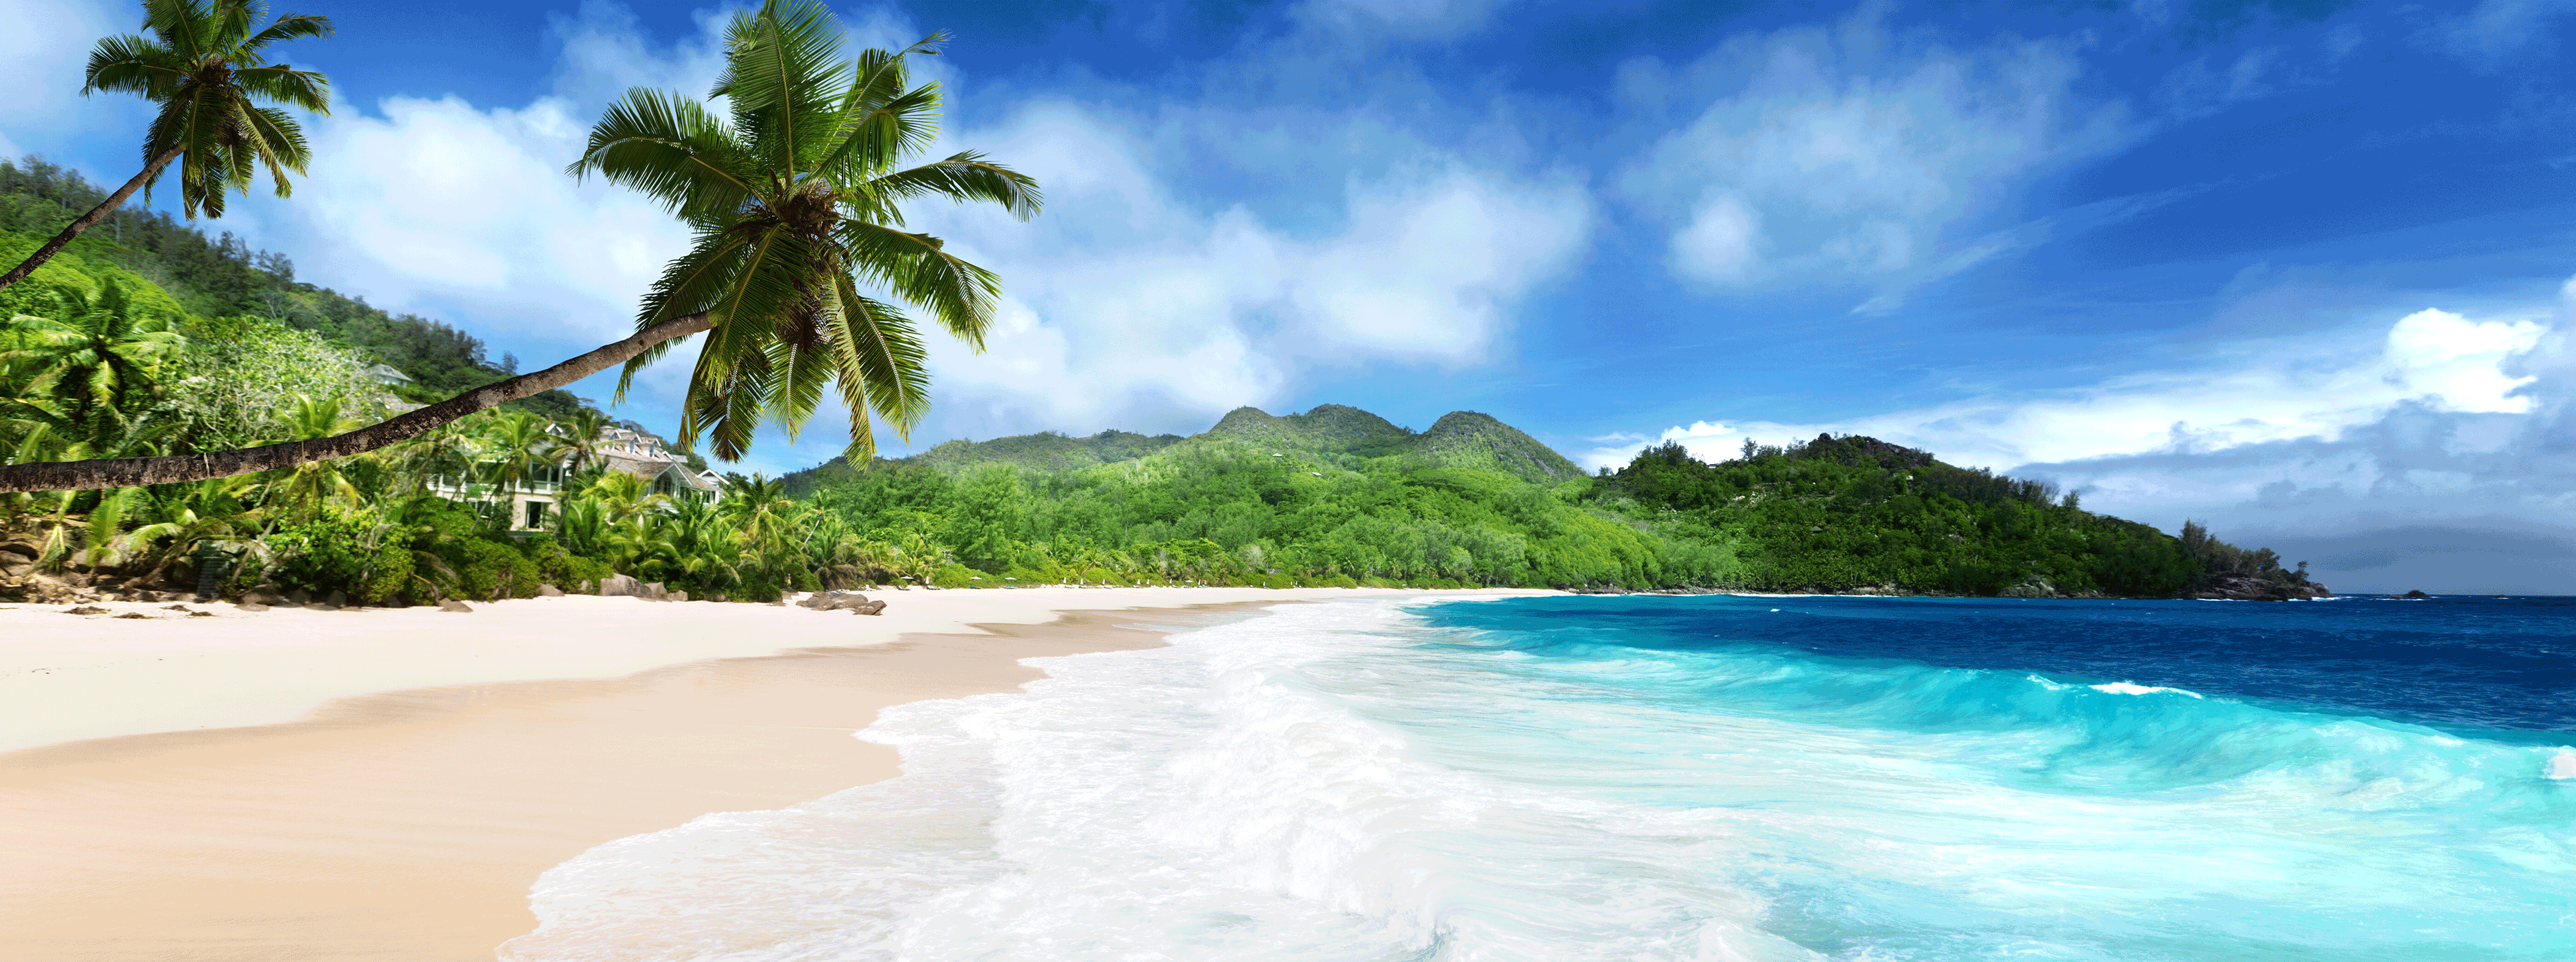 /resource/Images/africa/seychelles/headerimage/Mahe-island-beach-at-Seychelles.png